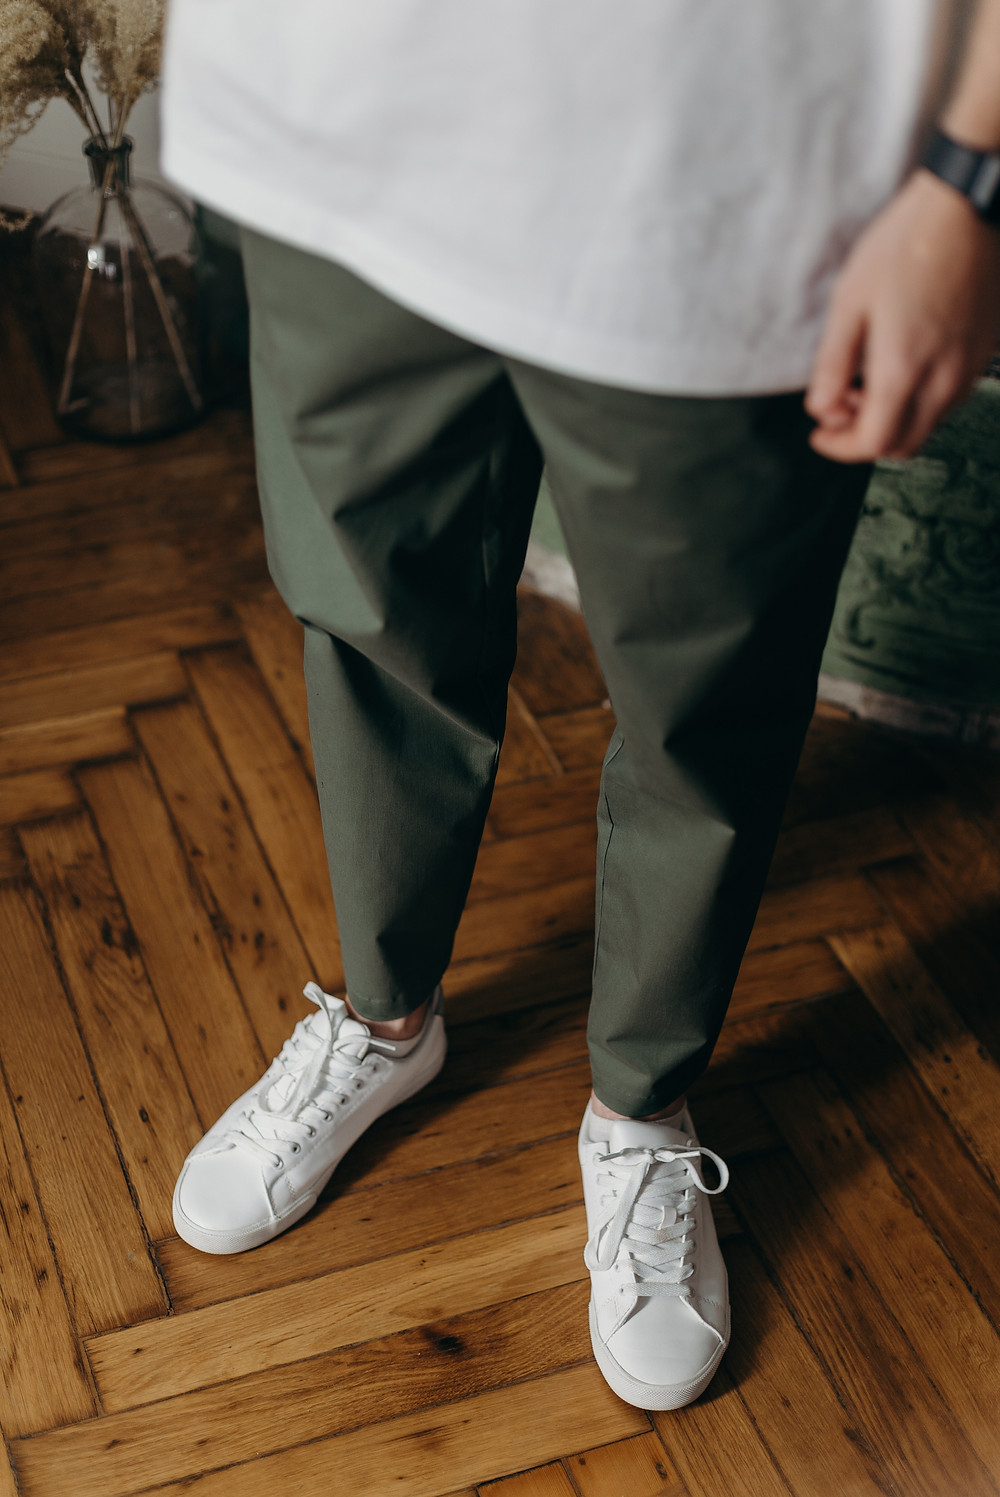 A man wearing a pair of white canvas sneakers